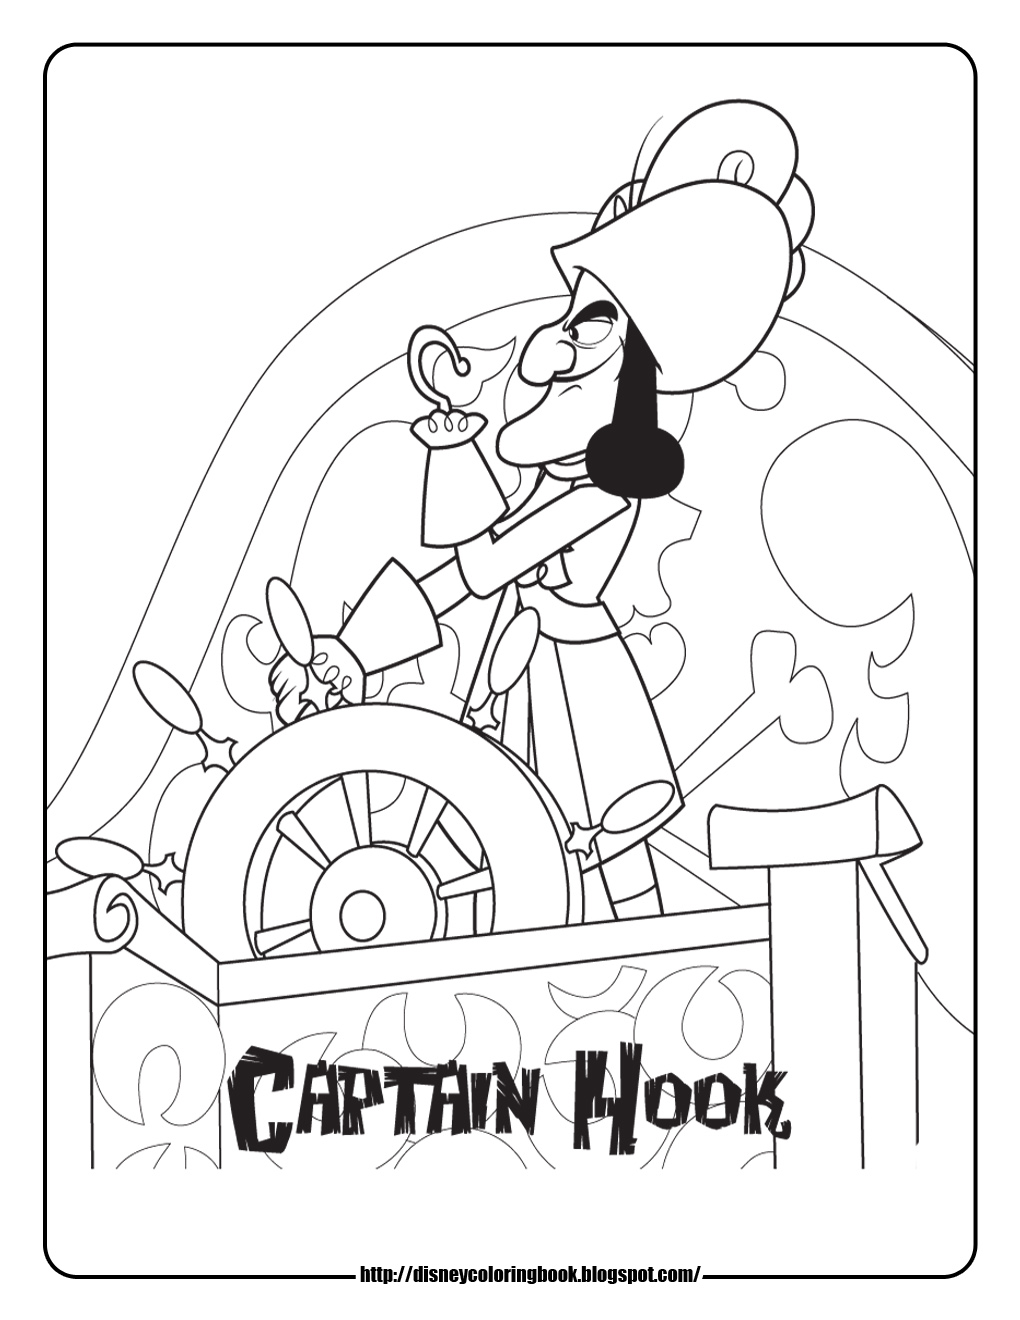 disney coloring pages and sheets for kids jake and the neverland - Pirate Coloring Pages